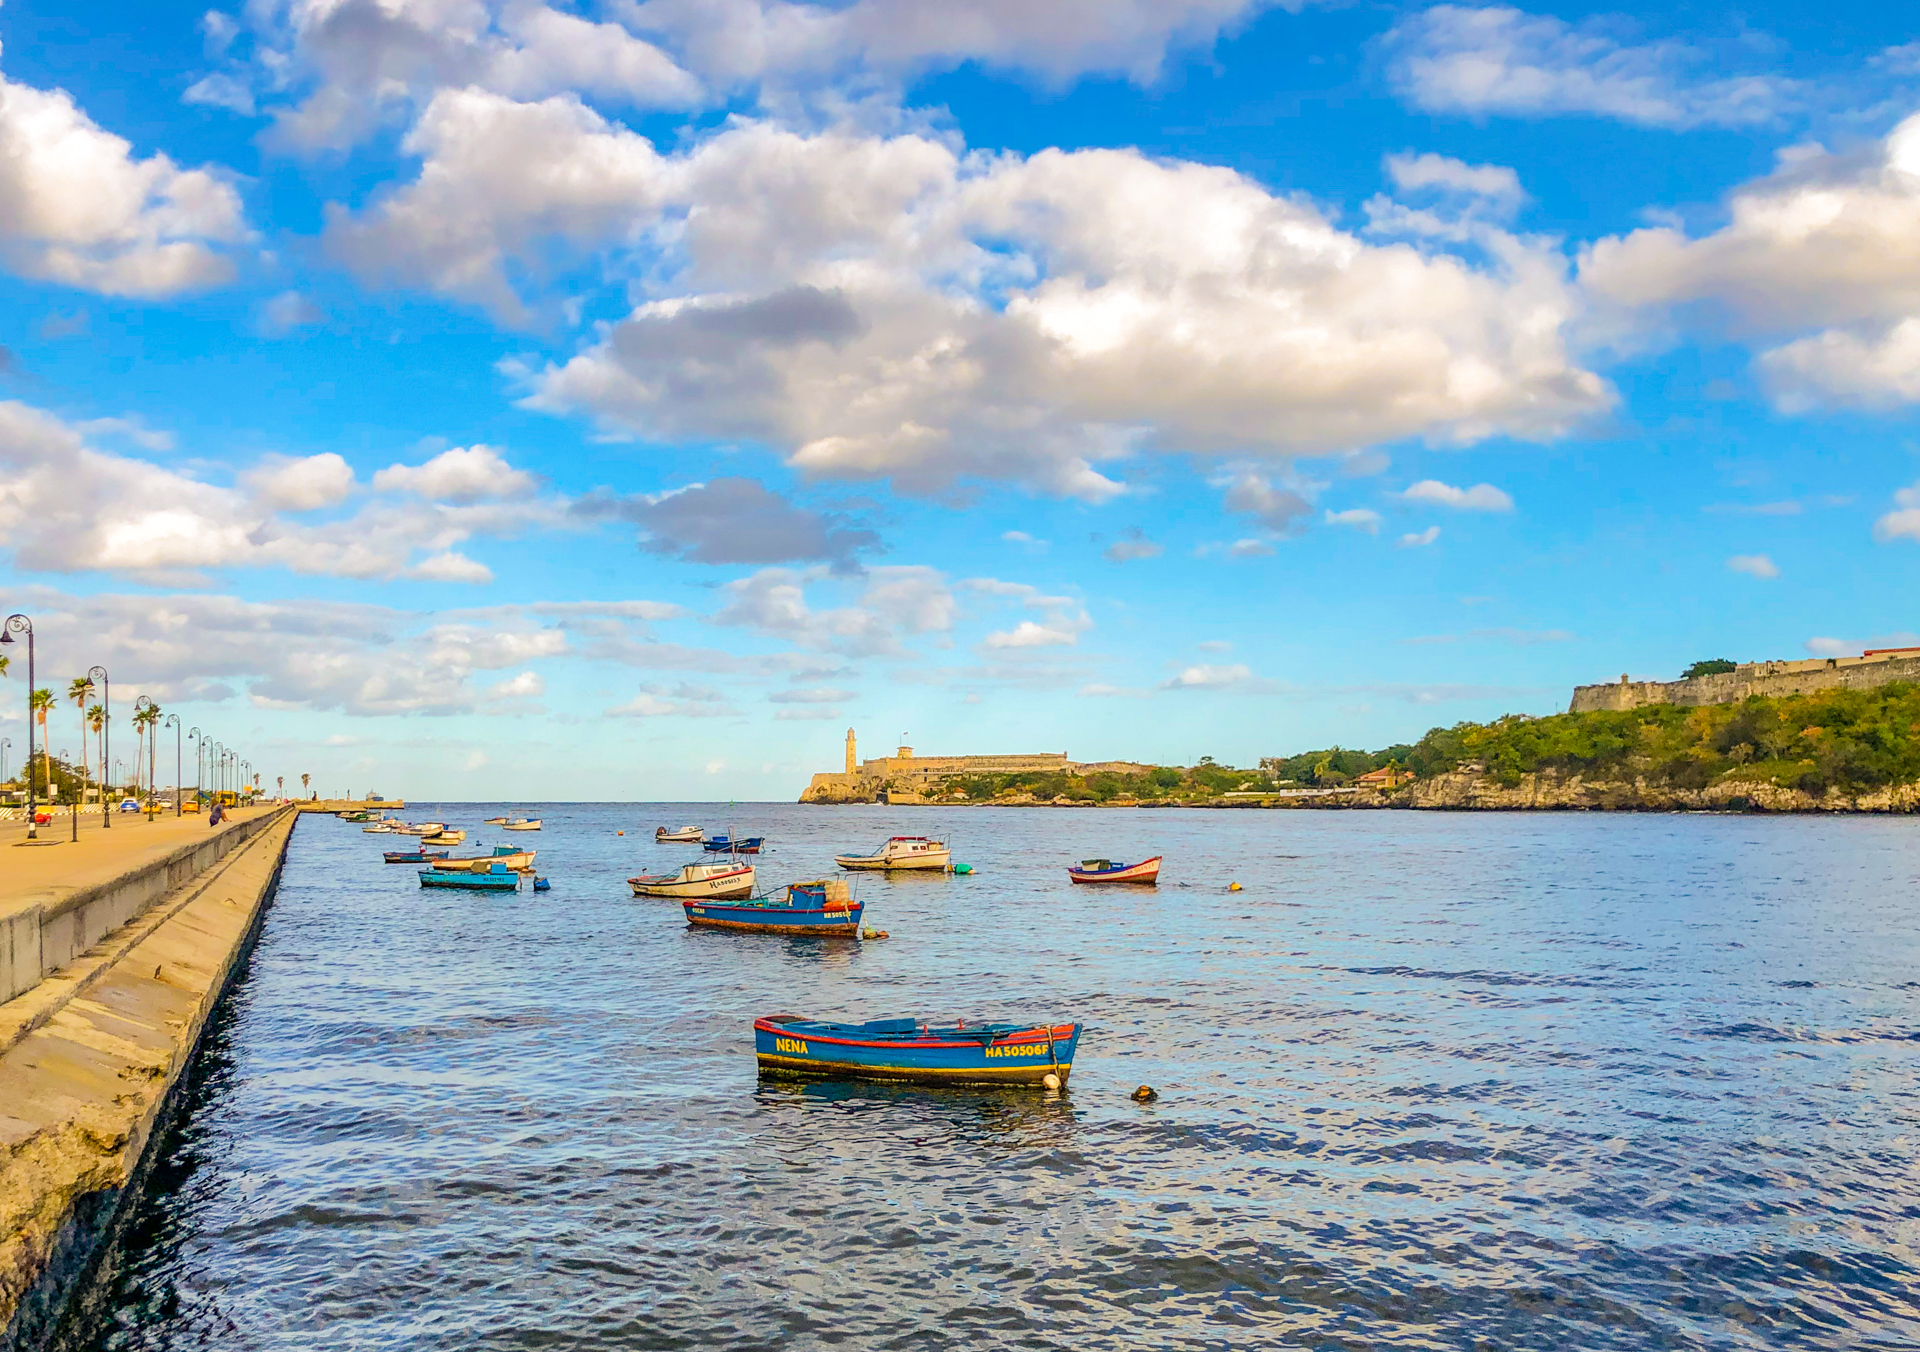 Port scene with boats in the water with a gradient applied to saturate the colours